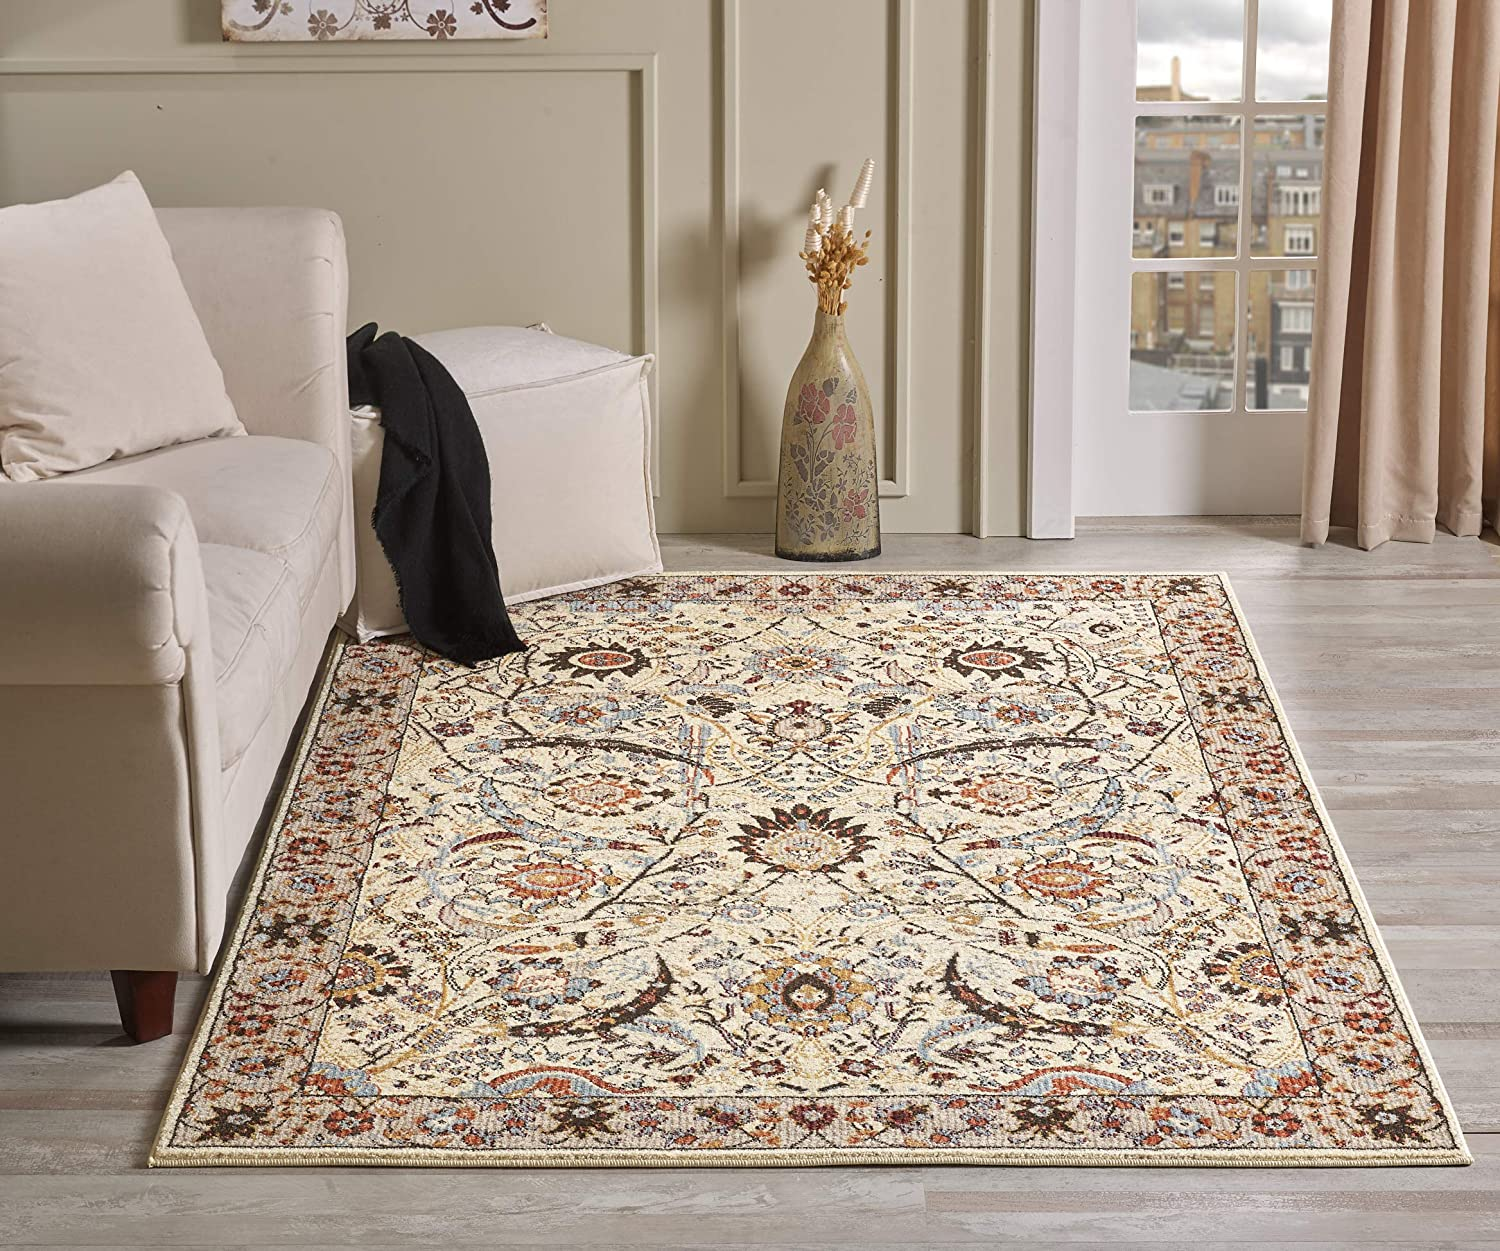 Golden Rugs Gabbeh Collection Persian Area Rug 5x7 Hand Touch Vintage South West Rug Floral Traditional Texture for Bedroom Living/Dining Room 6909